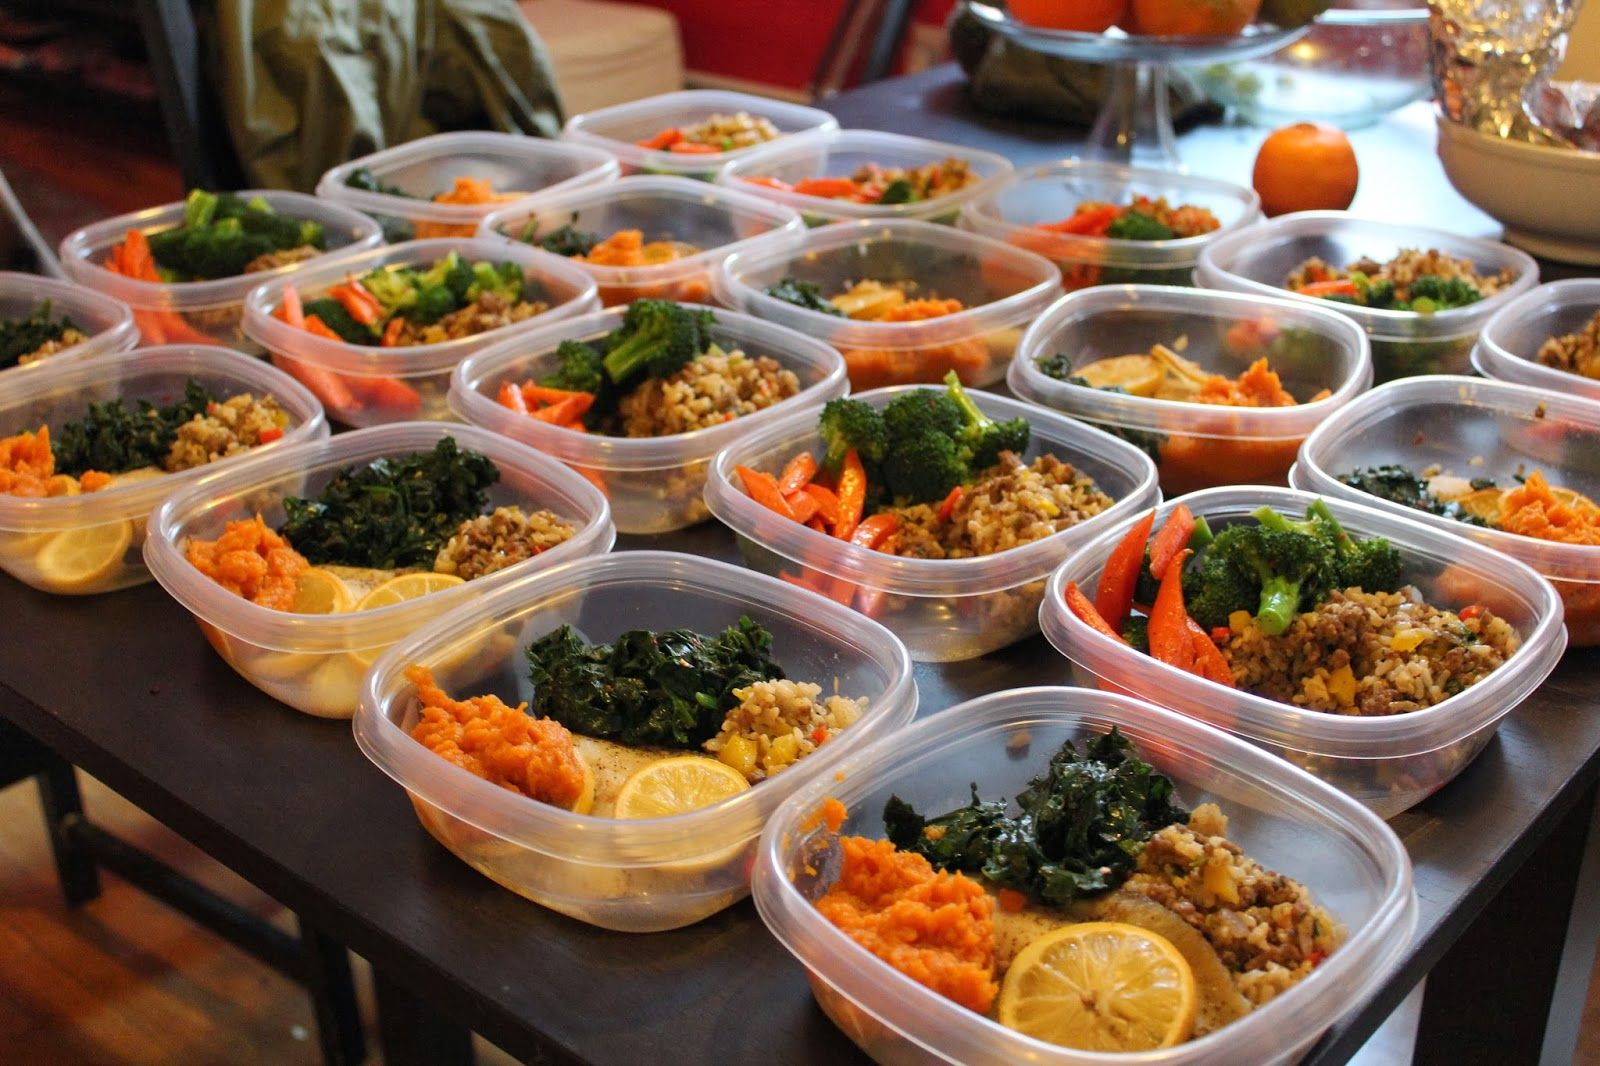 mealprep expert tips for easy healthy and affordable meals all week long f o o d i n s p i. Black Bedroom Furniture Sets. Home Design Ideas